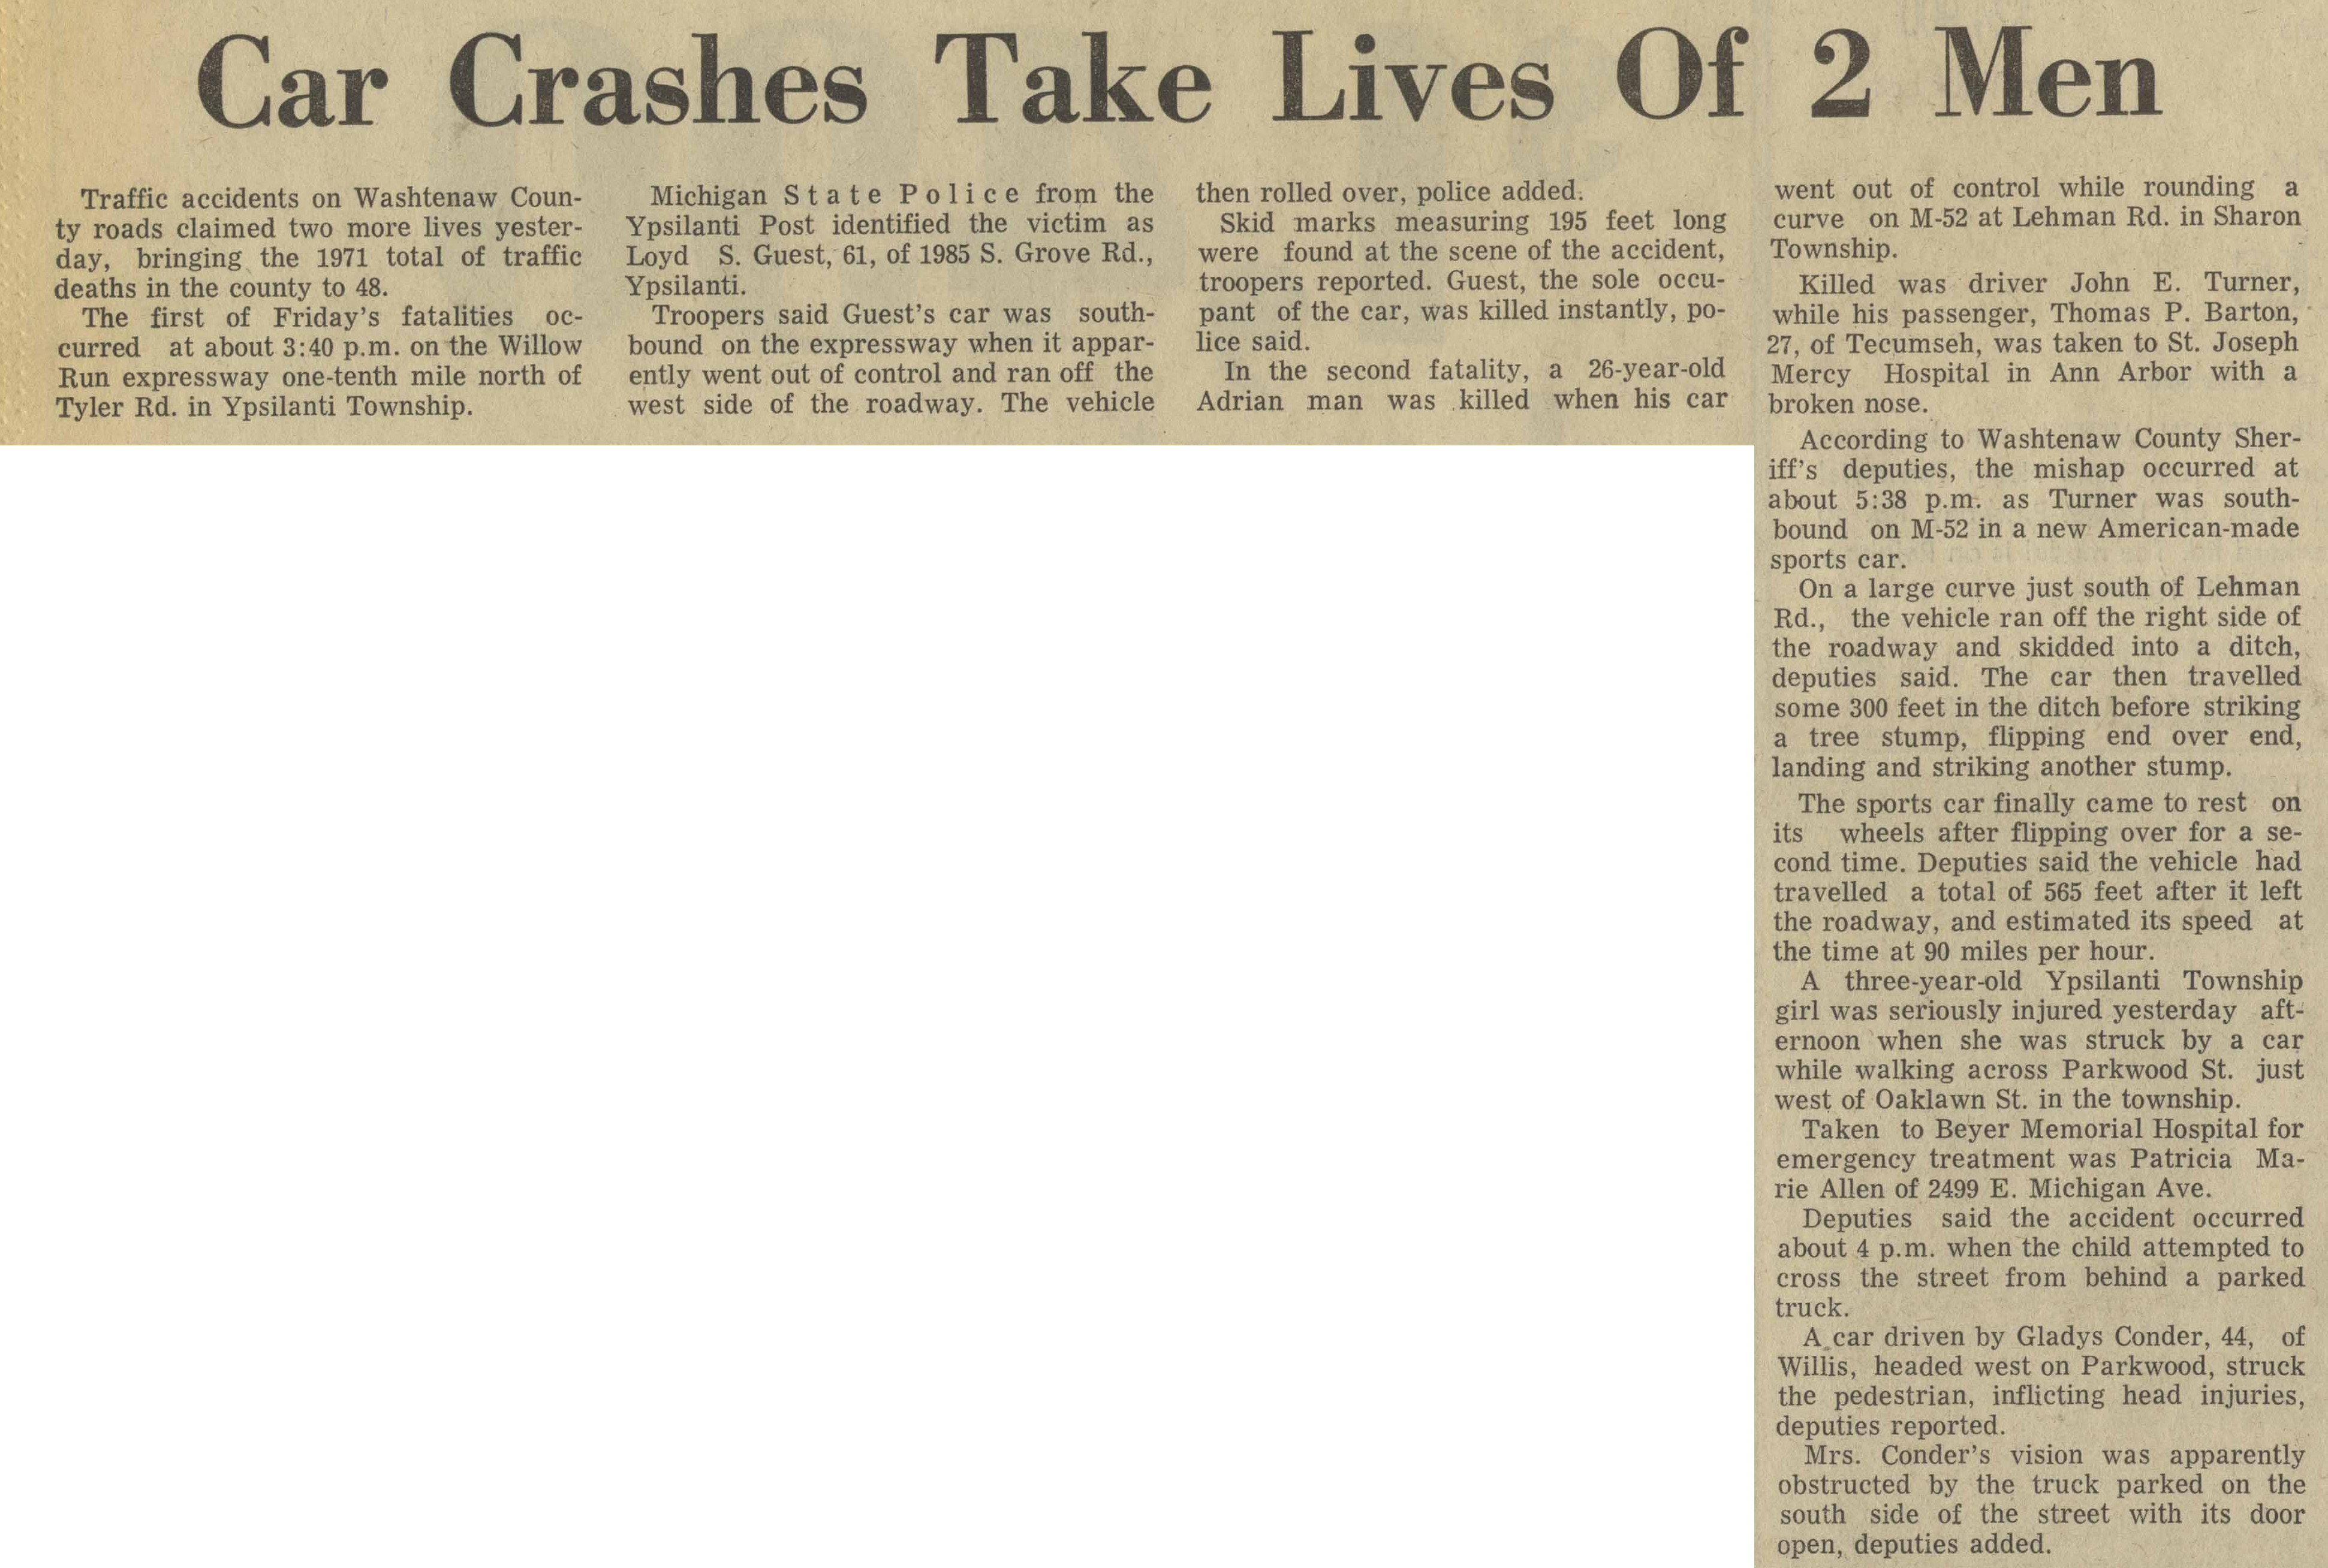 Car Crashes Take Lives Of 2 Men | Ann Arbor District Library